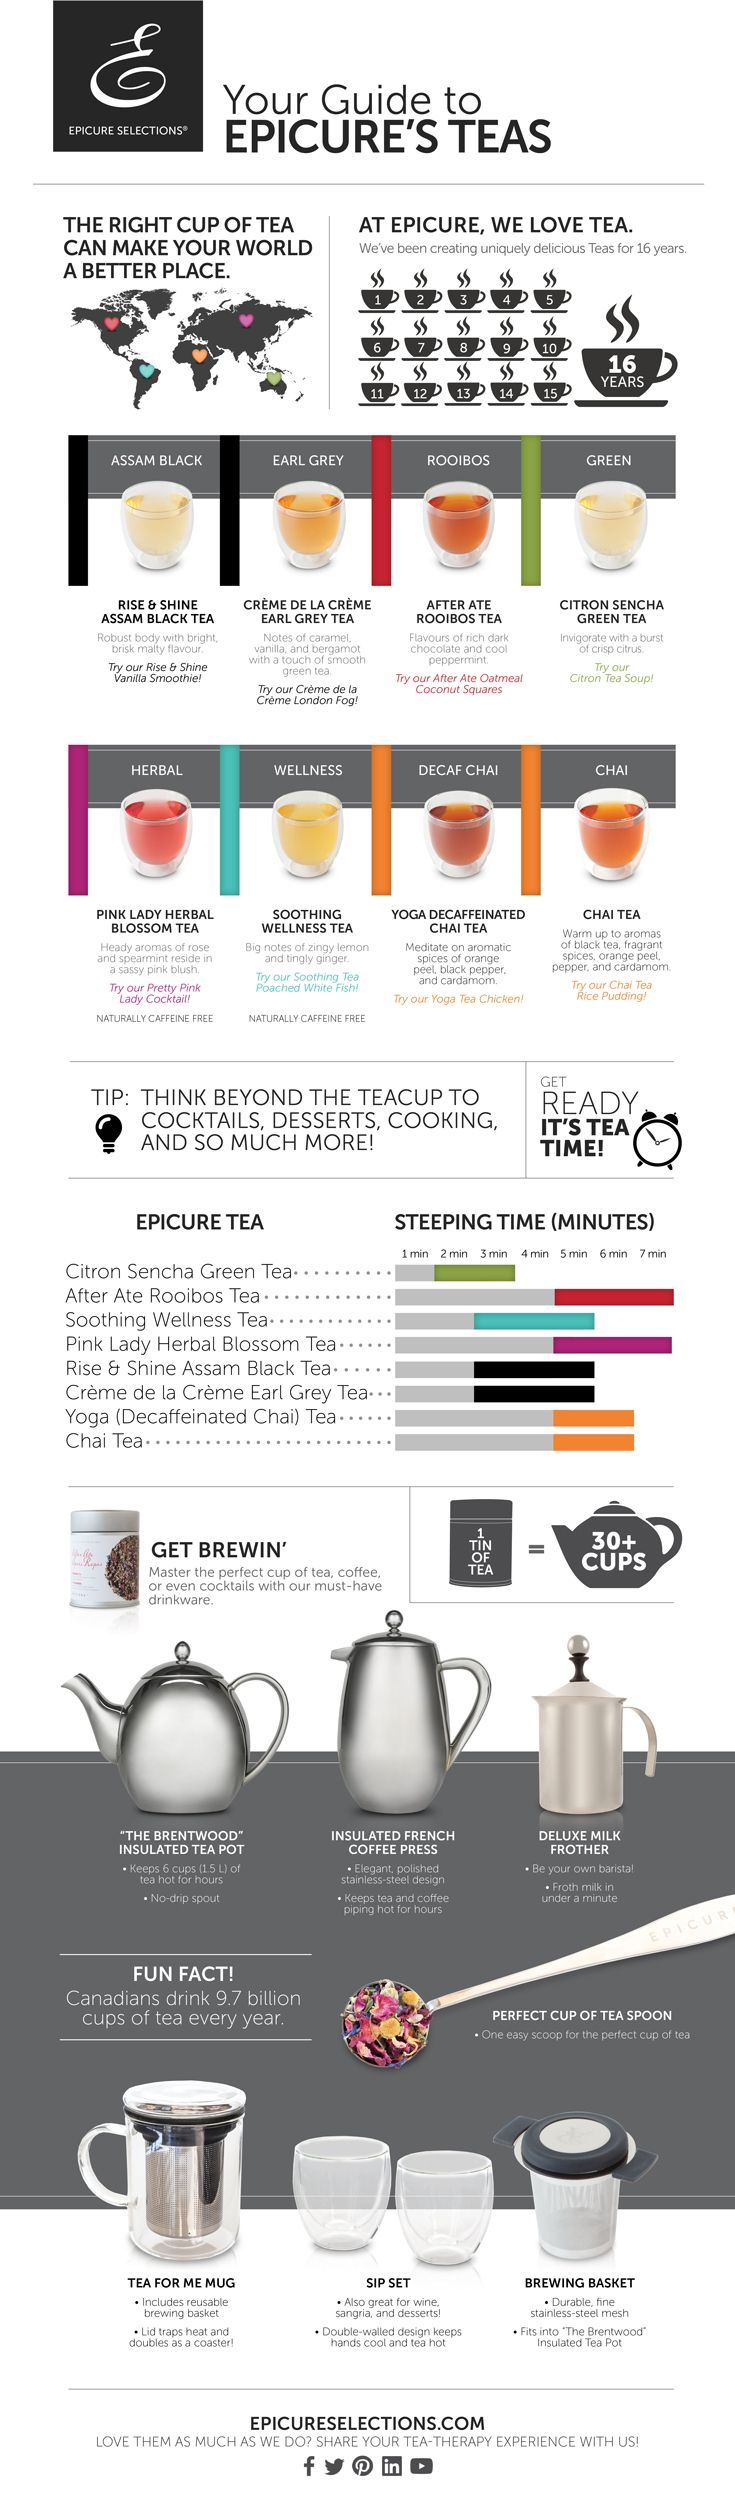 Your guide to Epicure's teas!